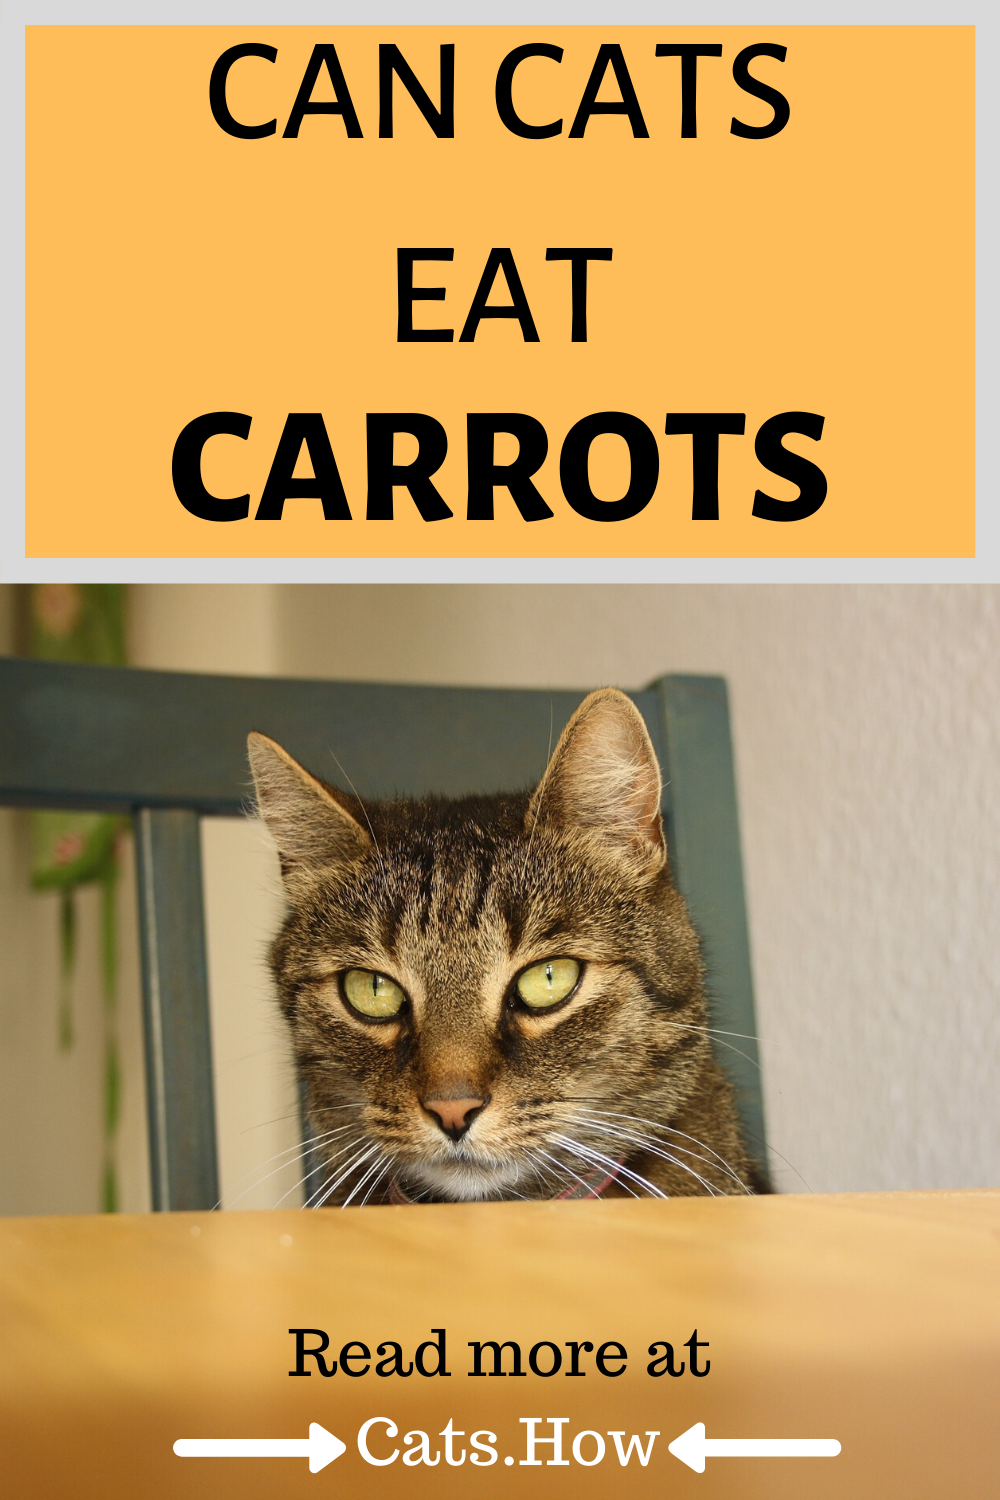 Can Cats Eat Carrots In 2020 Cat Nutrition Best Cat Food Healthy Cat Food